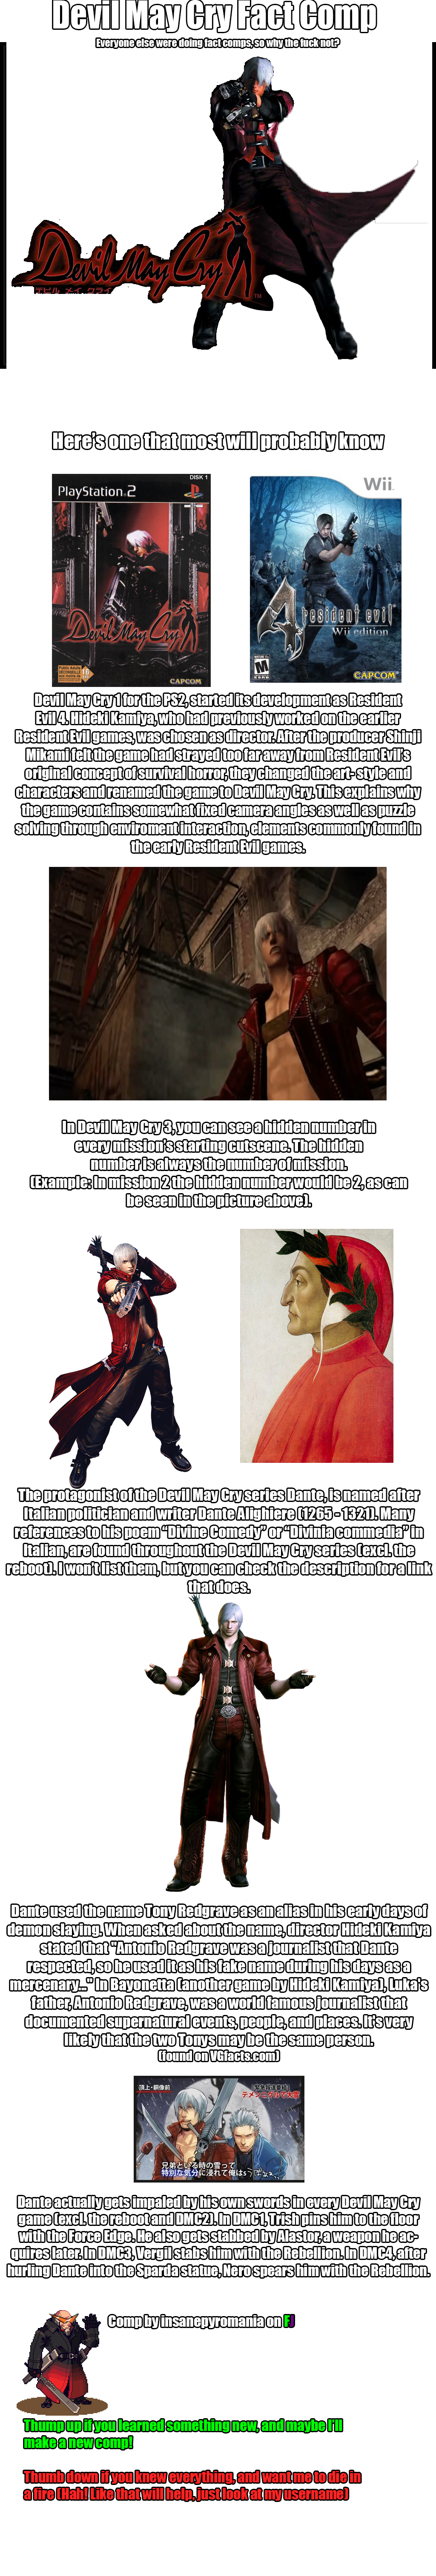 Devil May Cry Fact Comp 1. Feel free to correct me if anything here is wrong Link for Divine Comedy references: .. You forgot to mention that Dante's brother Vergil was named after the long deceased poet from Rome, Virgil, who guided Dante through the 9 circles of Hell.